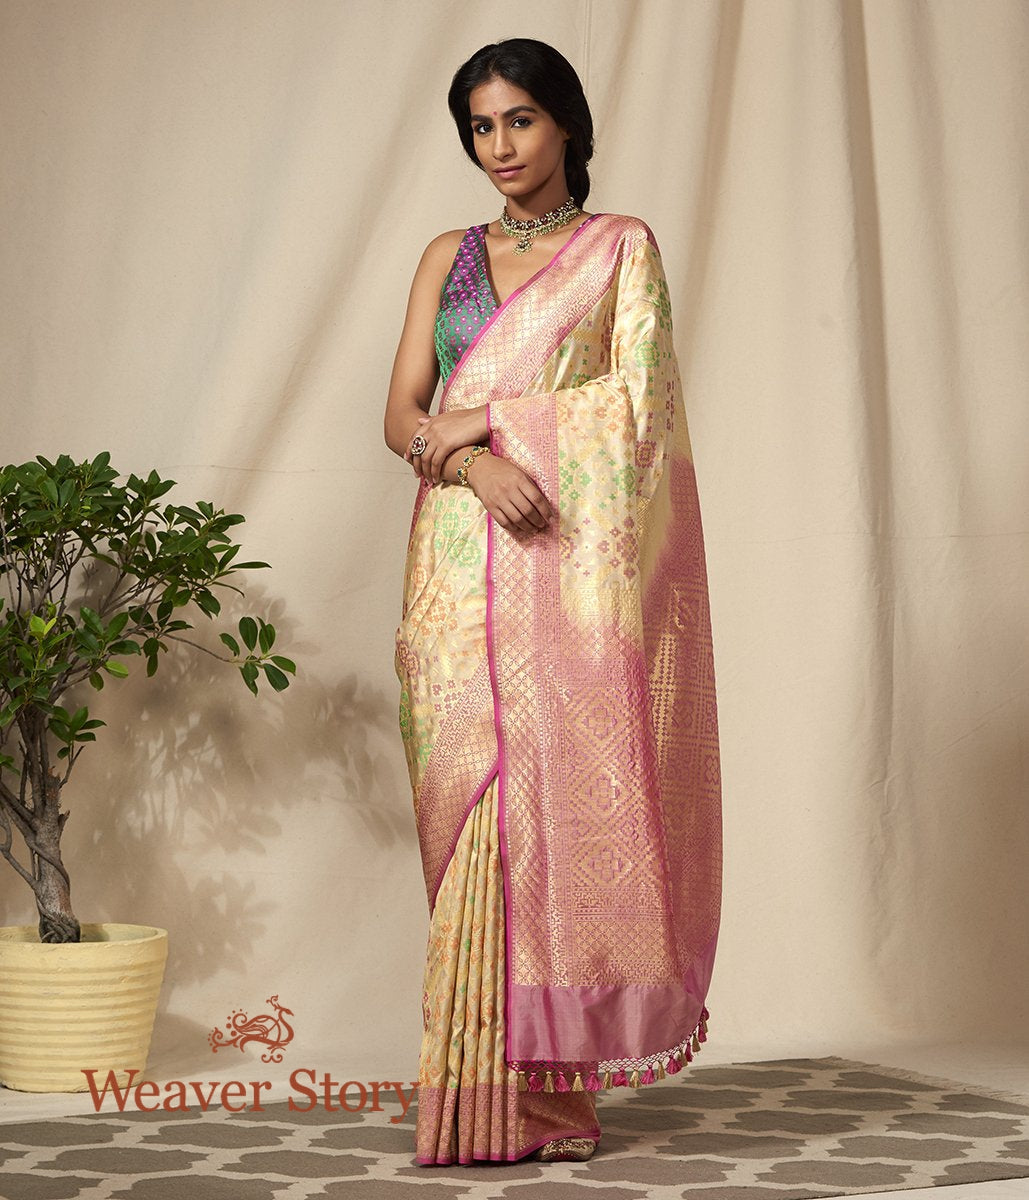 Handwoven Banarasi Patola Saree in Cream and Pink